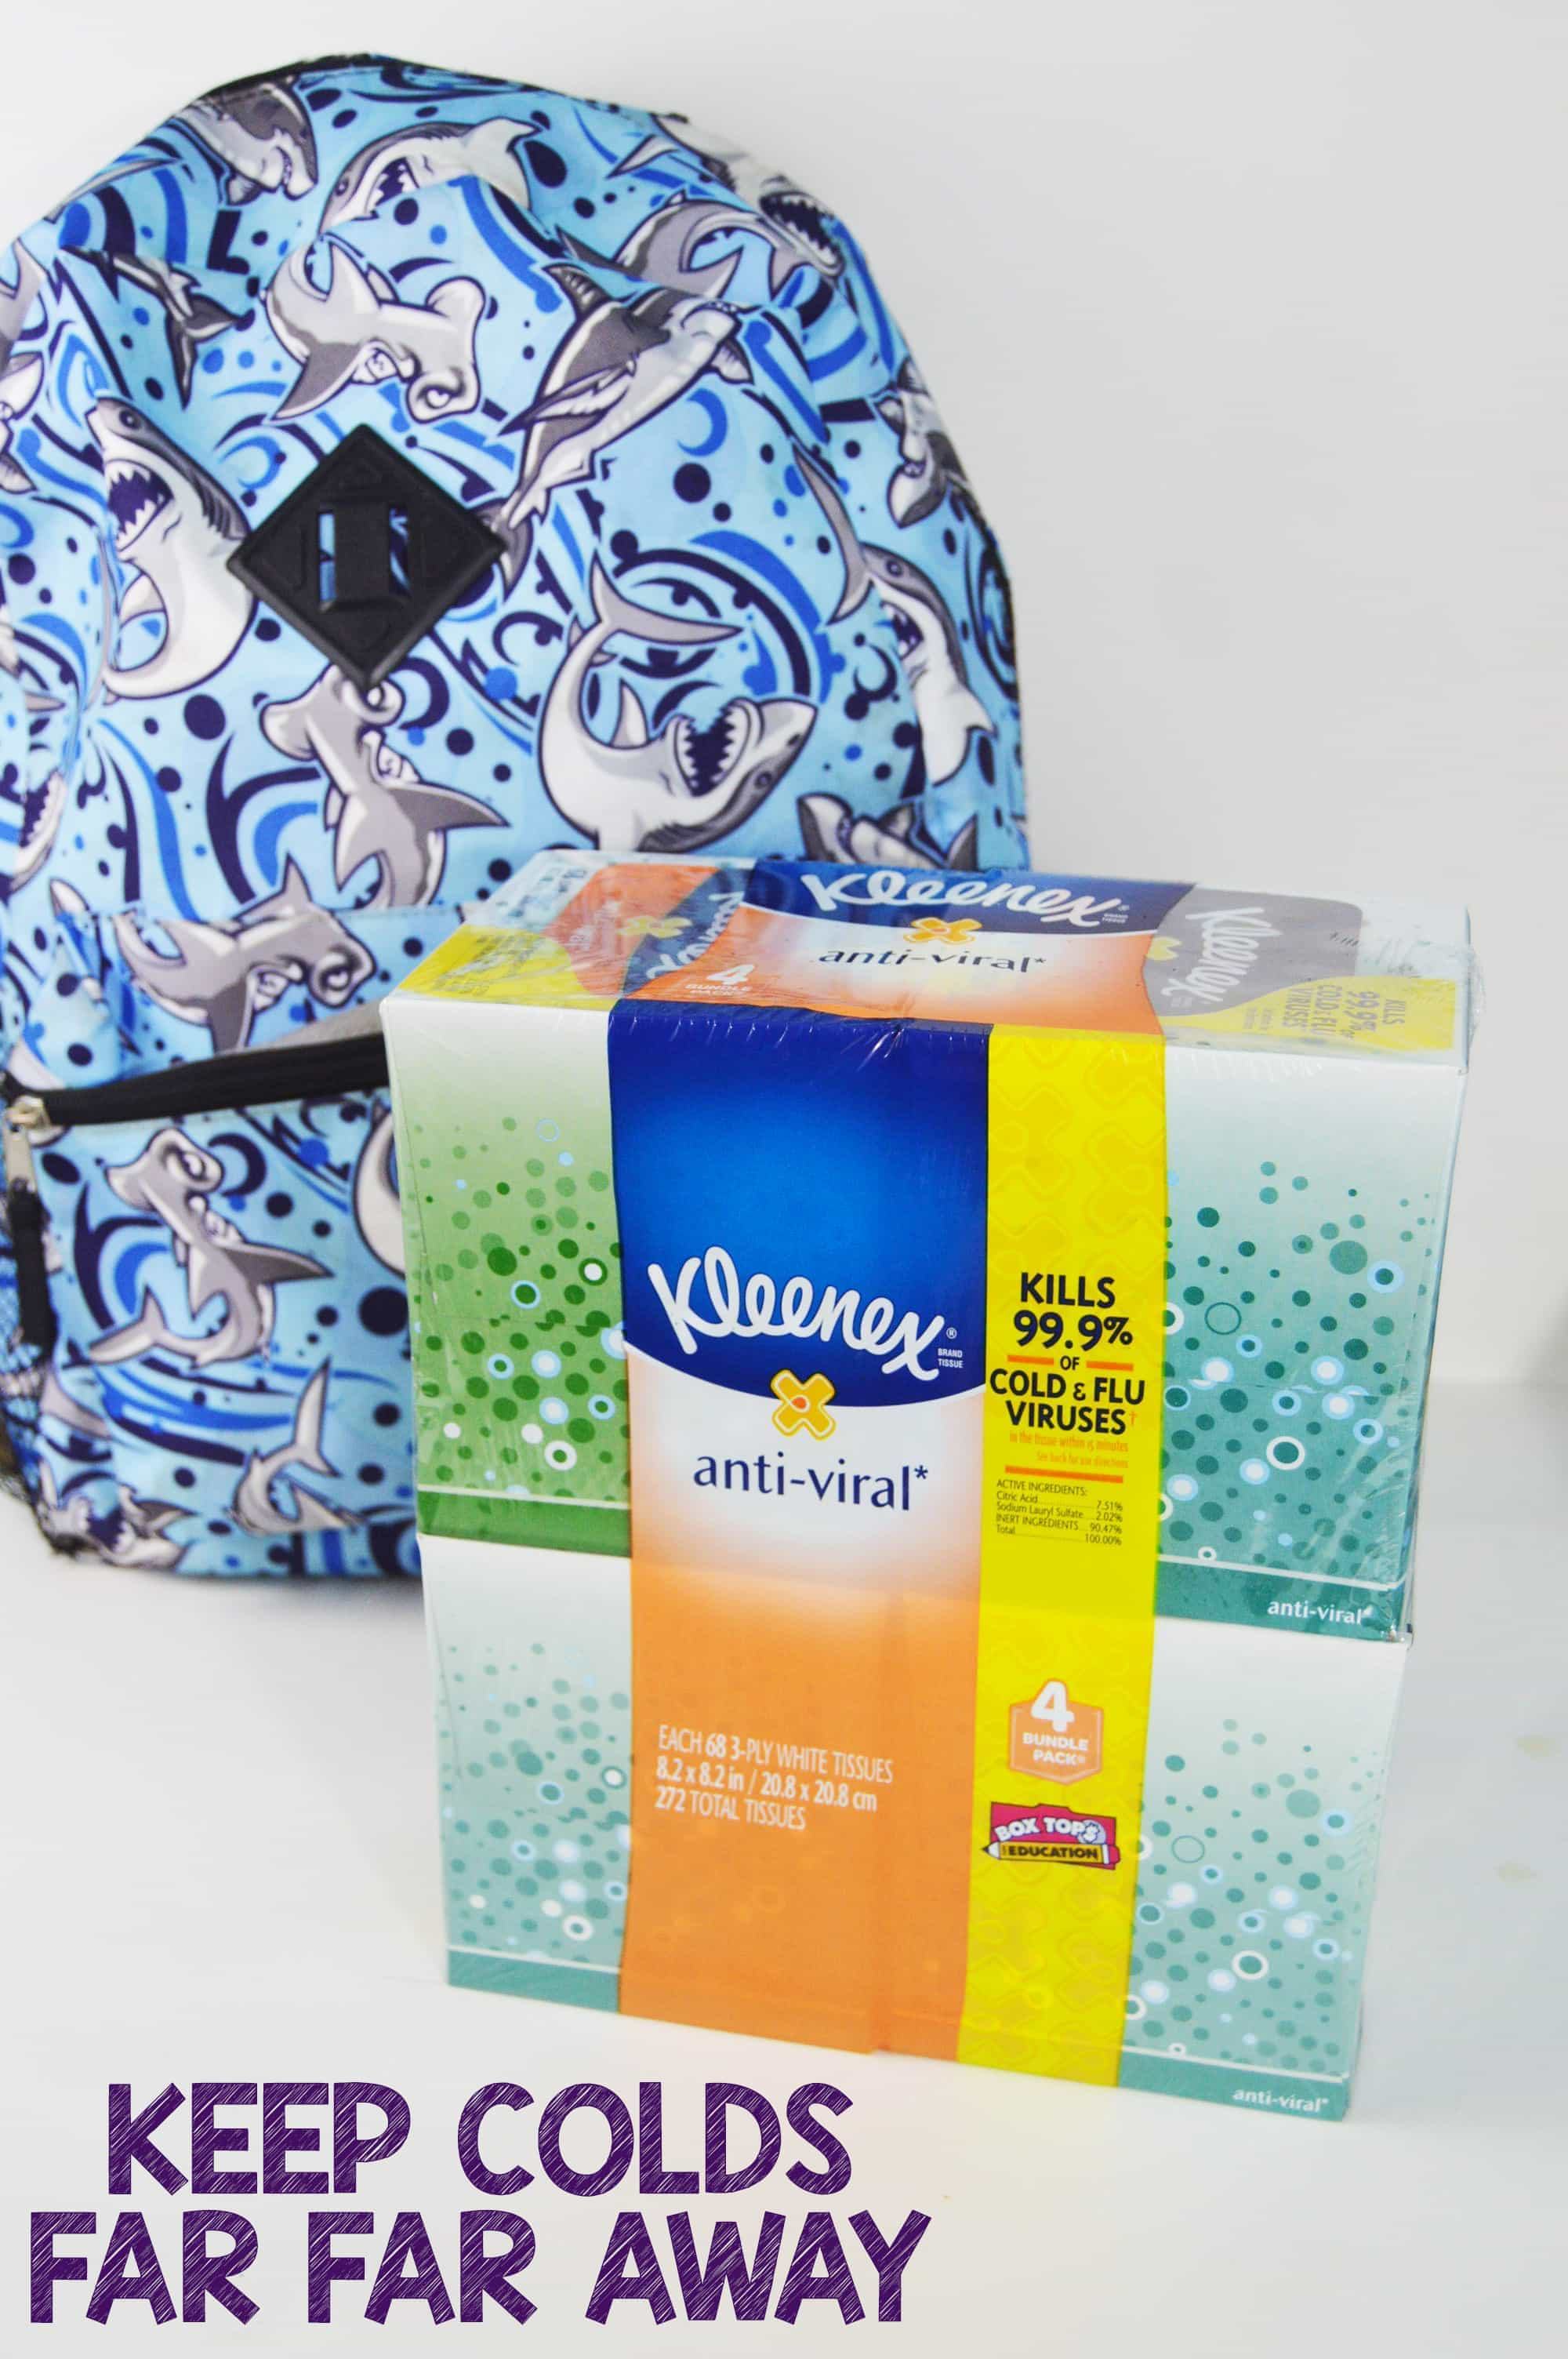 Be A Cold Hero At Home And School With Kleenex Anti-viral (available At Walmart)